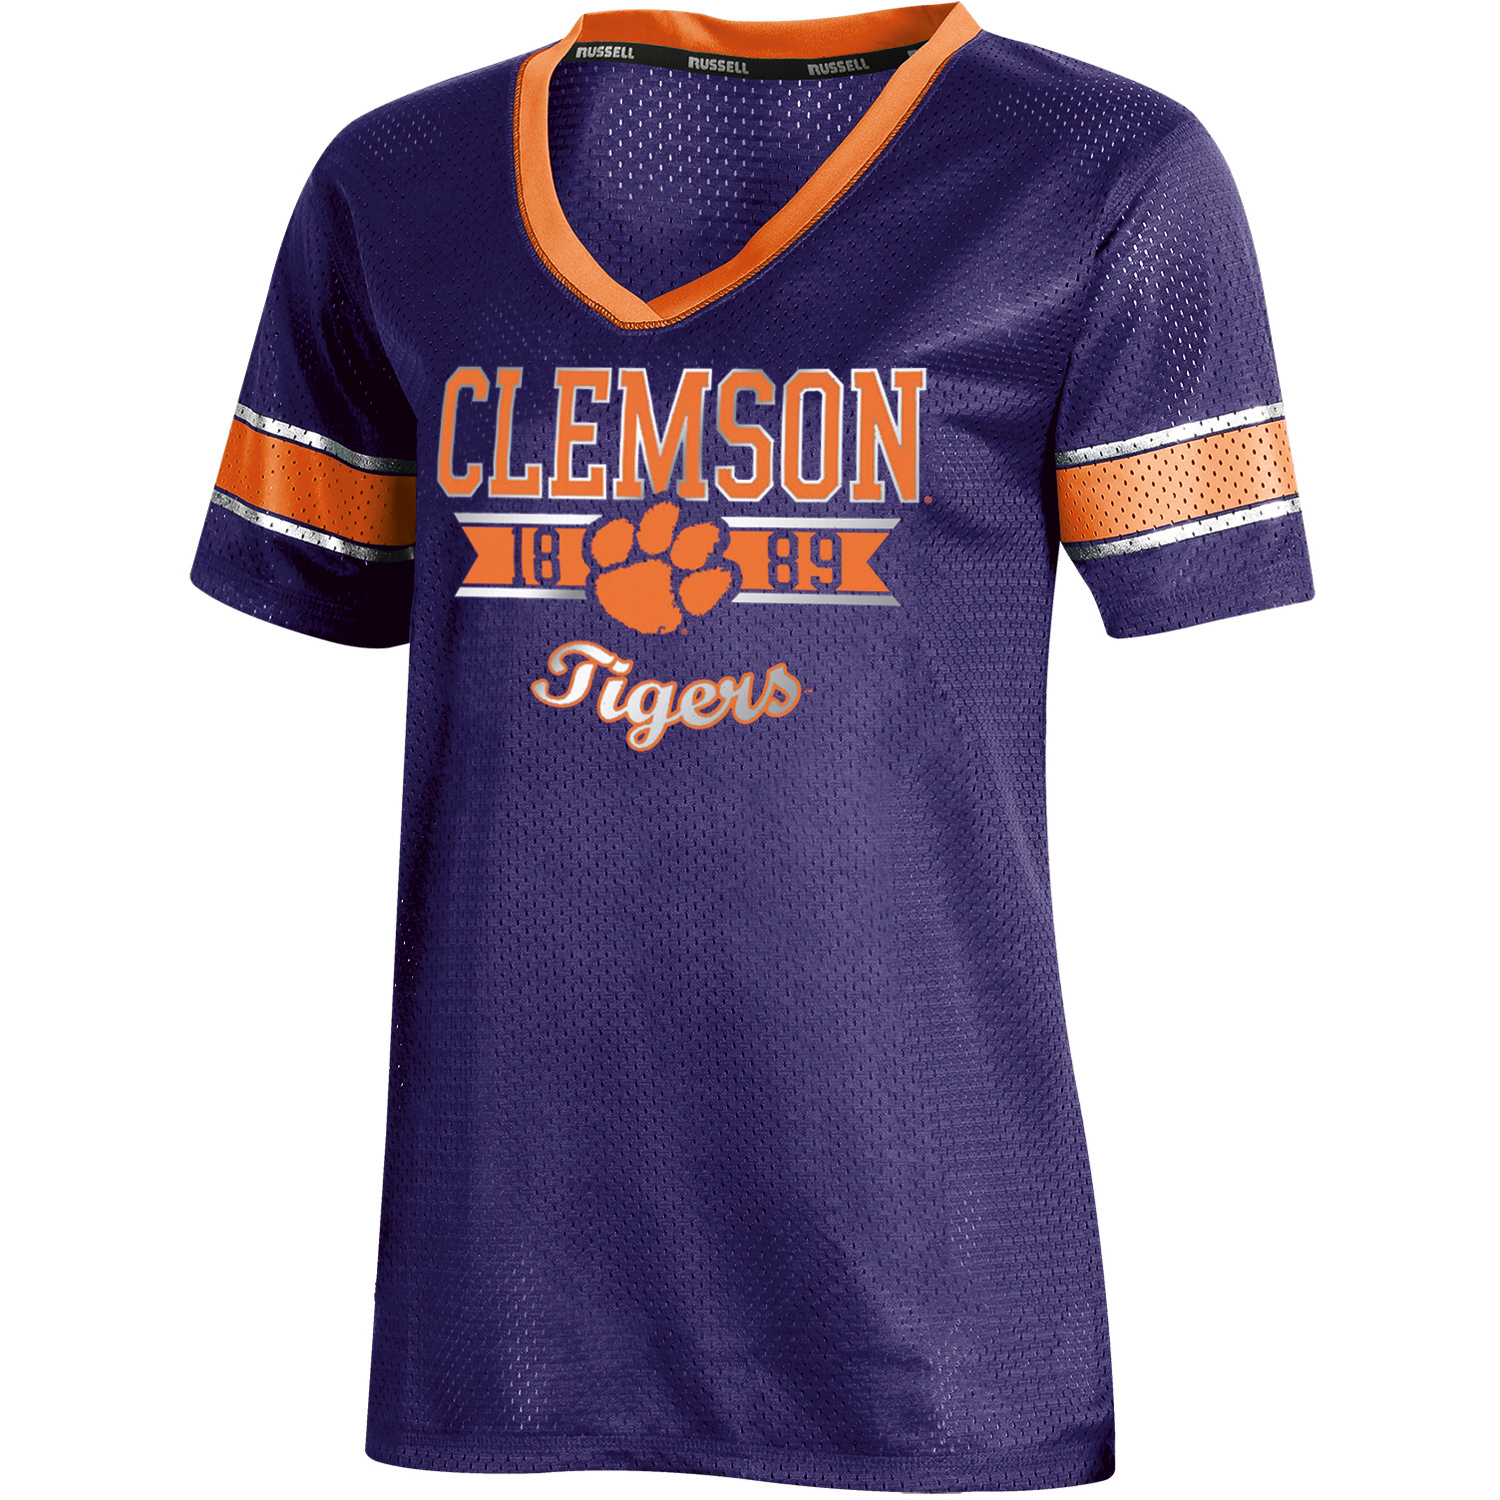 Women's Russell Purple Clemson Tigers Fashion Jersey V-Neck T-Shirt